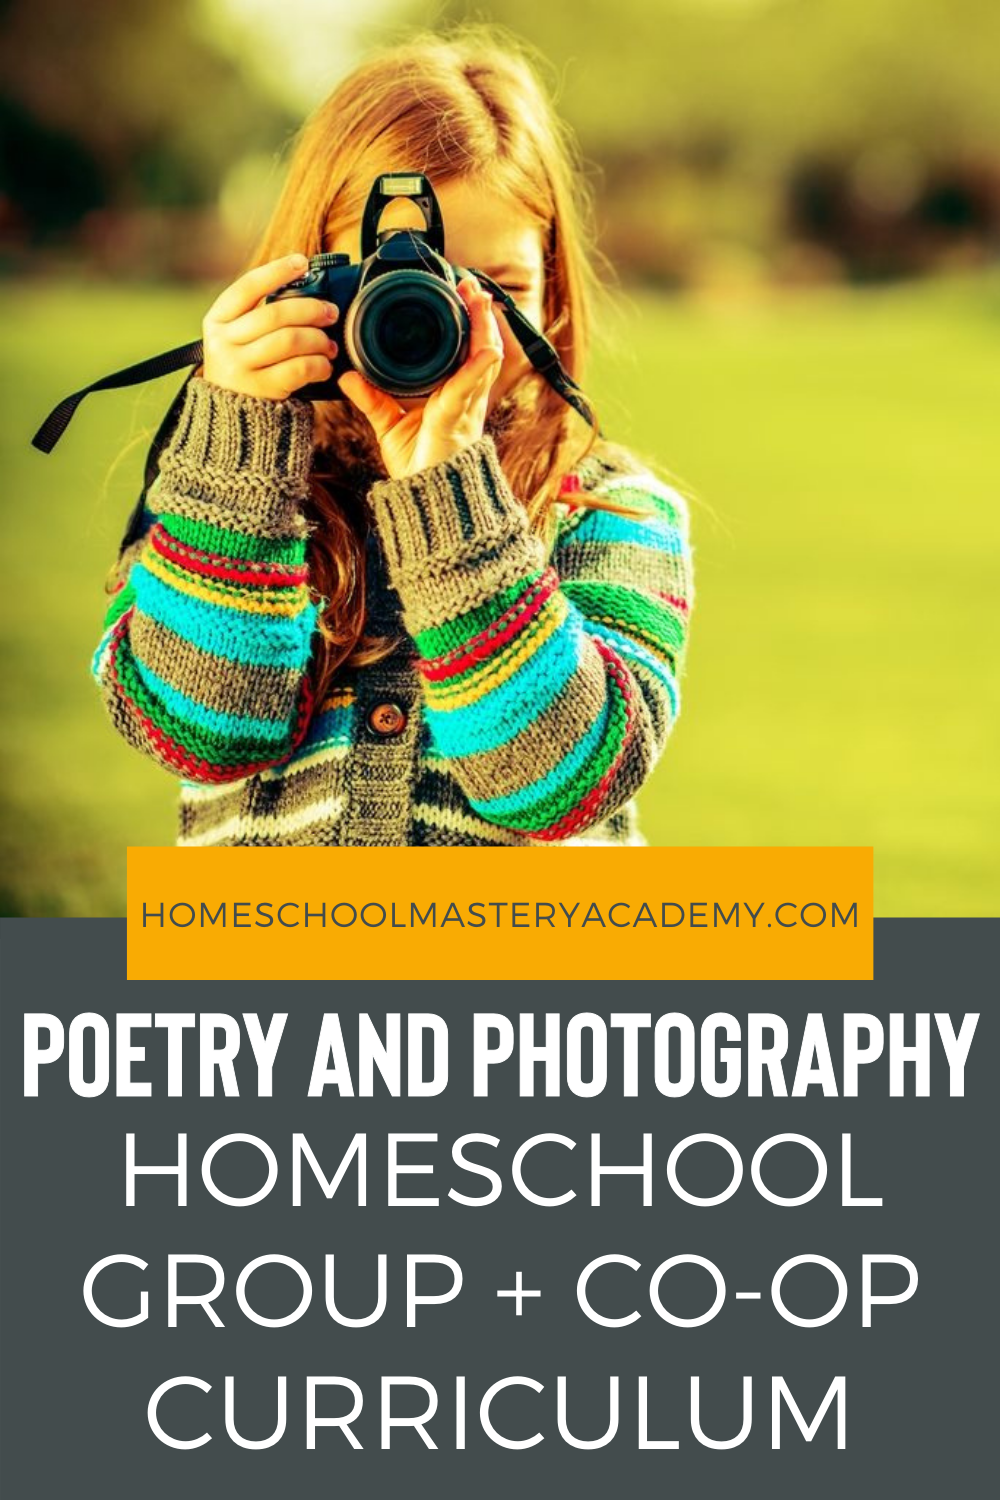 Enjoy this fantastic, easy to follow curriculum with your homeschool group or co-op. Students love this innovative approach to combining poetry and photography! #homeschool #homeschoolcurriculum #homeschoolgroup #homeschoolcoop